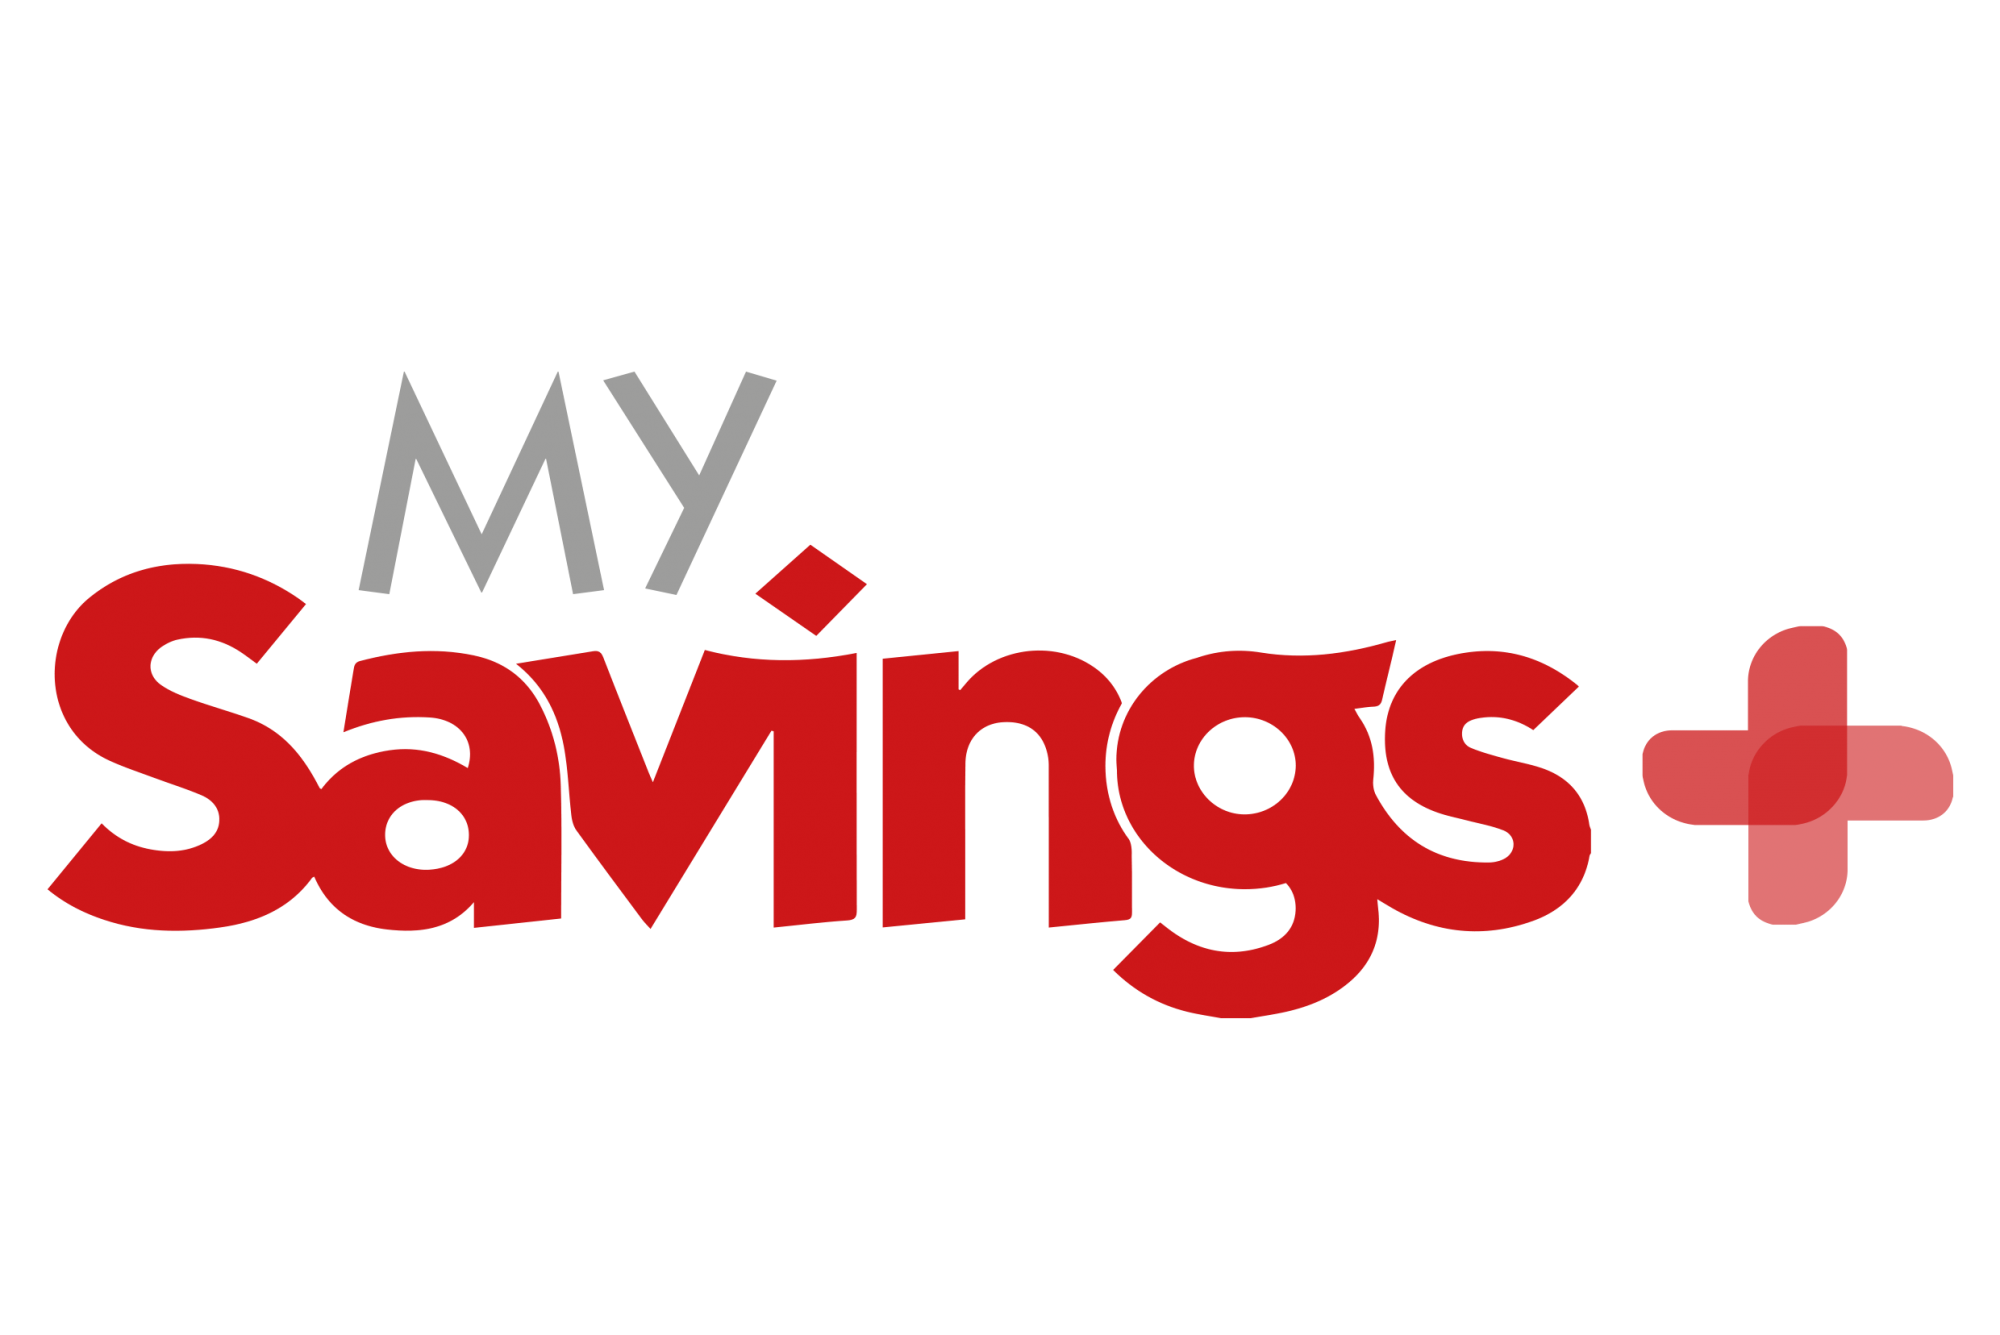 My savings plus logo, savings + is written in red